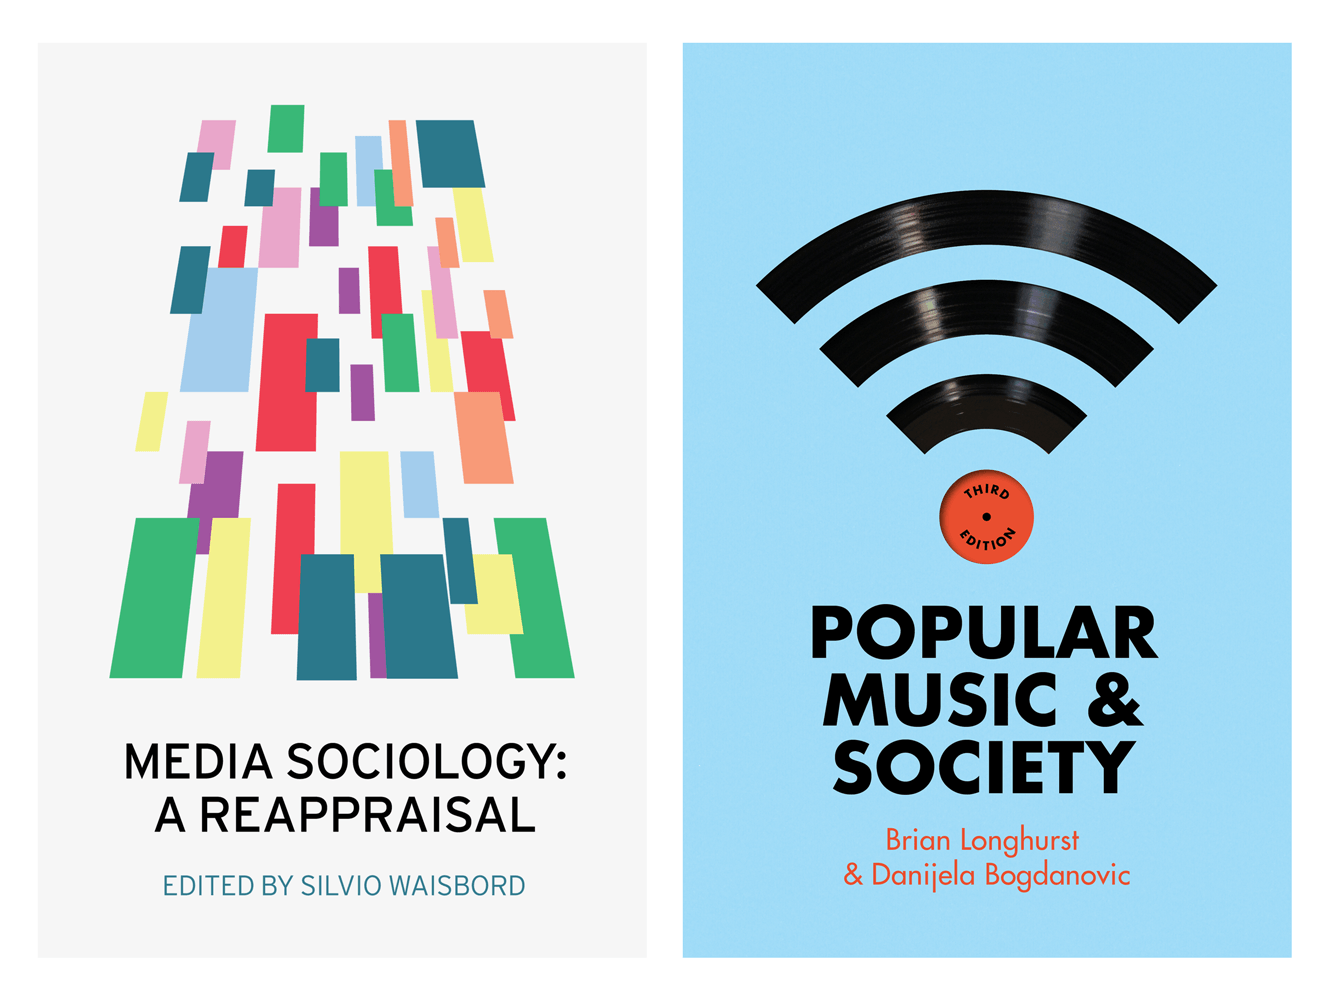 Book Cover Design For Media Sociology: A Reappraisal And Popular Music And Society By Polity Books. Designed By &&& Creative